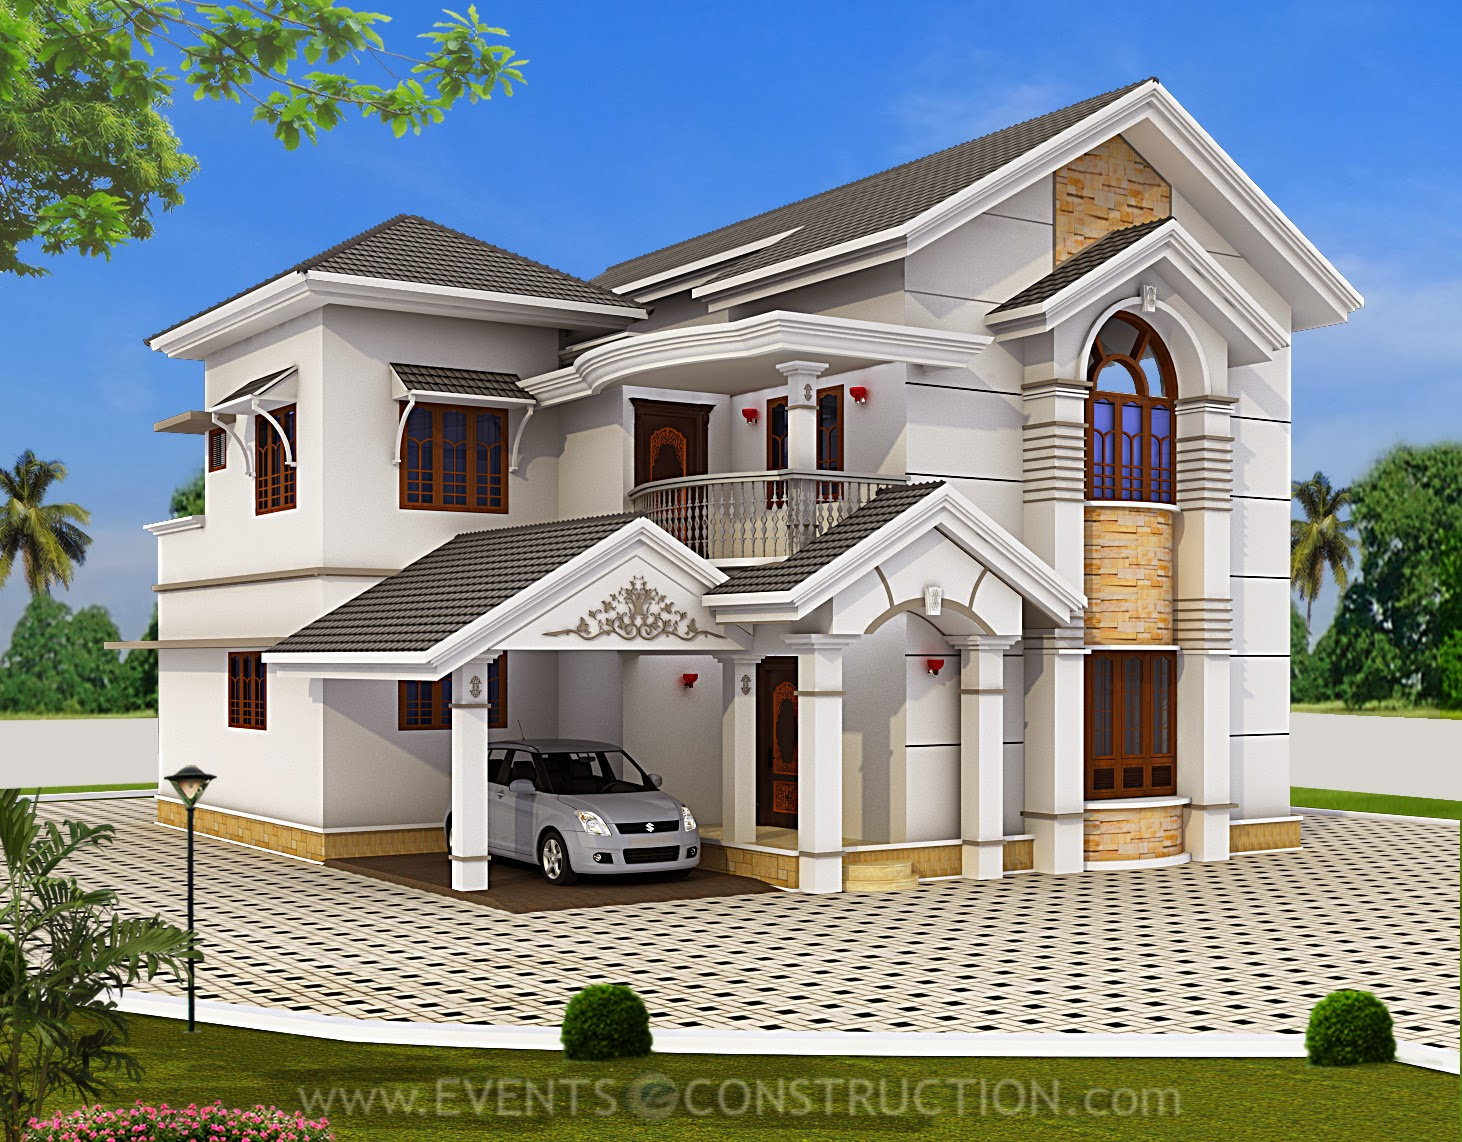 Evens construction pvt ltd awesome elevation of kerala for House outer wall design